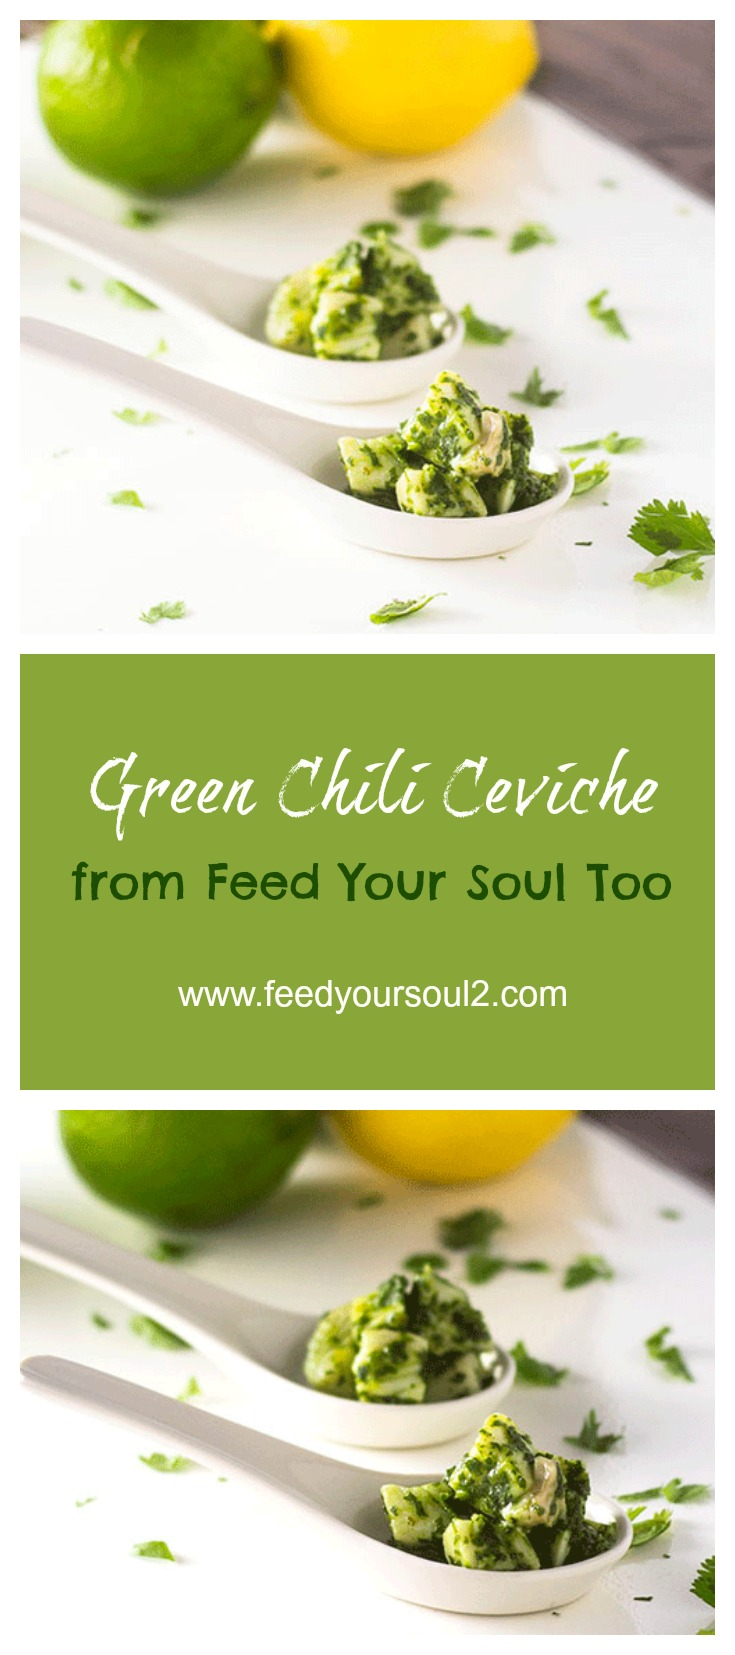 Green Chili Ceviche #Mexicanfood #rickbayless #appetizer #seafood | feedyoursoul2.com